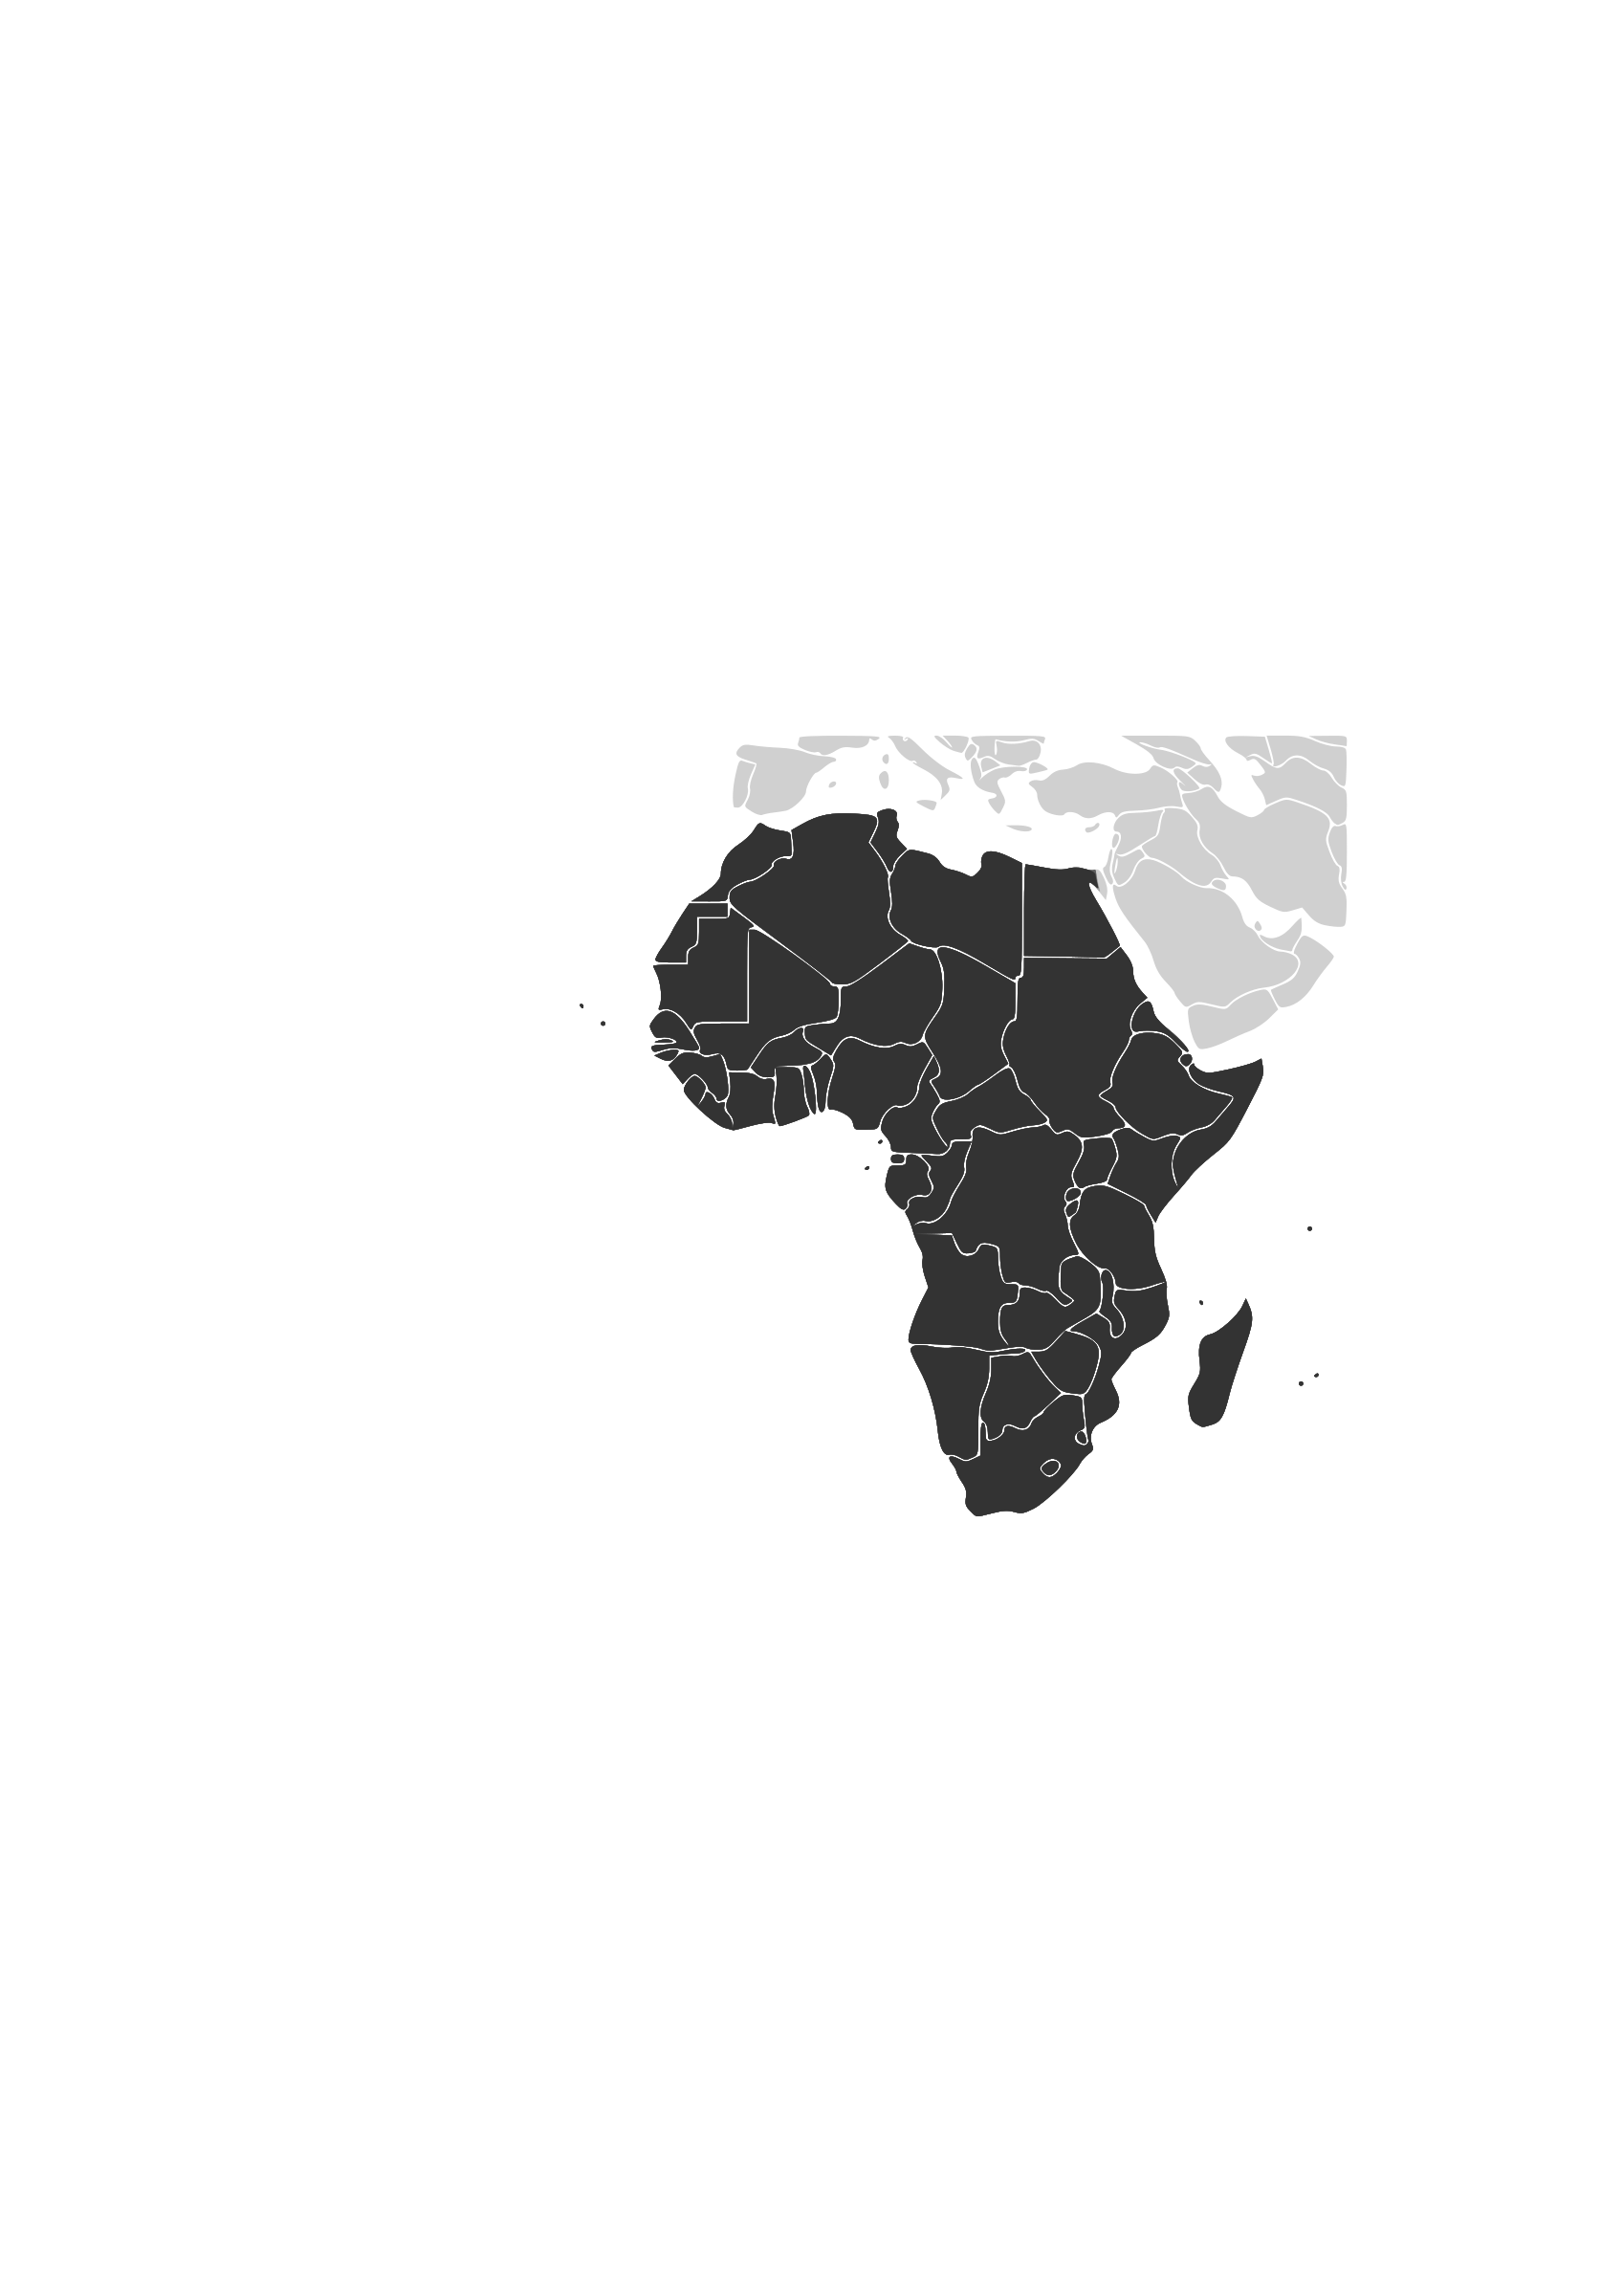 Africa continent by afk